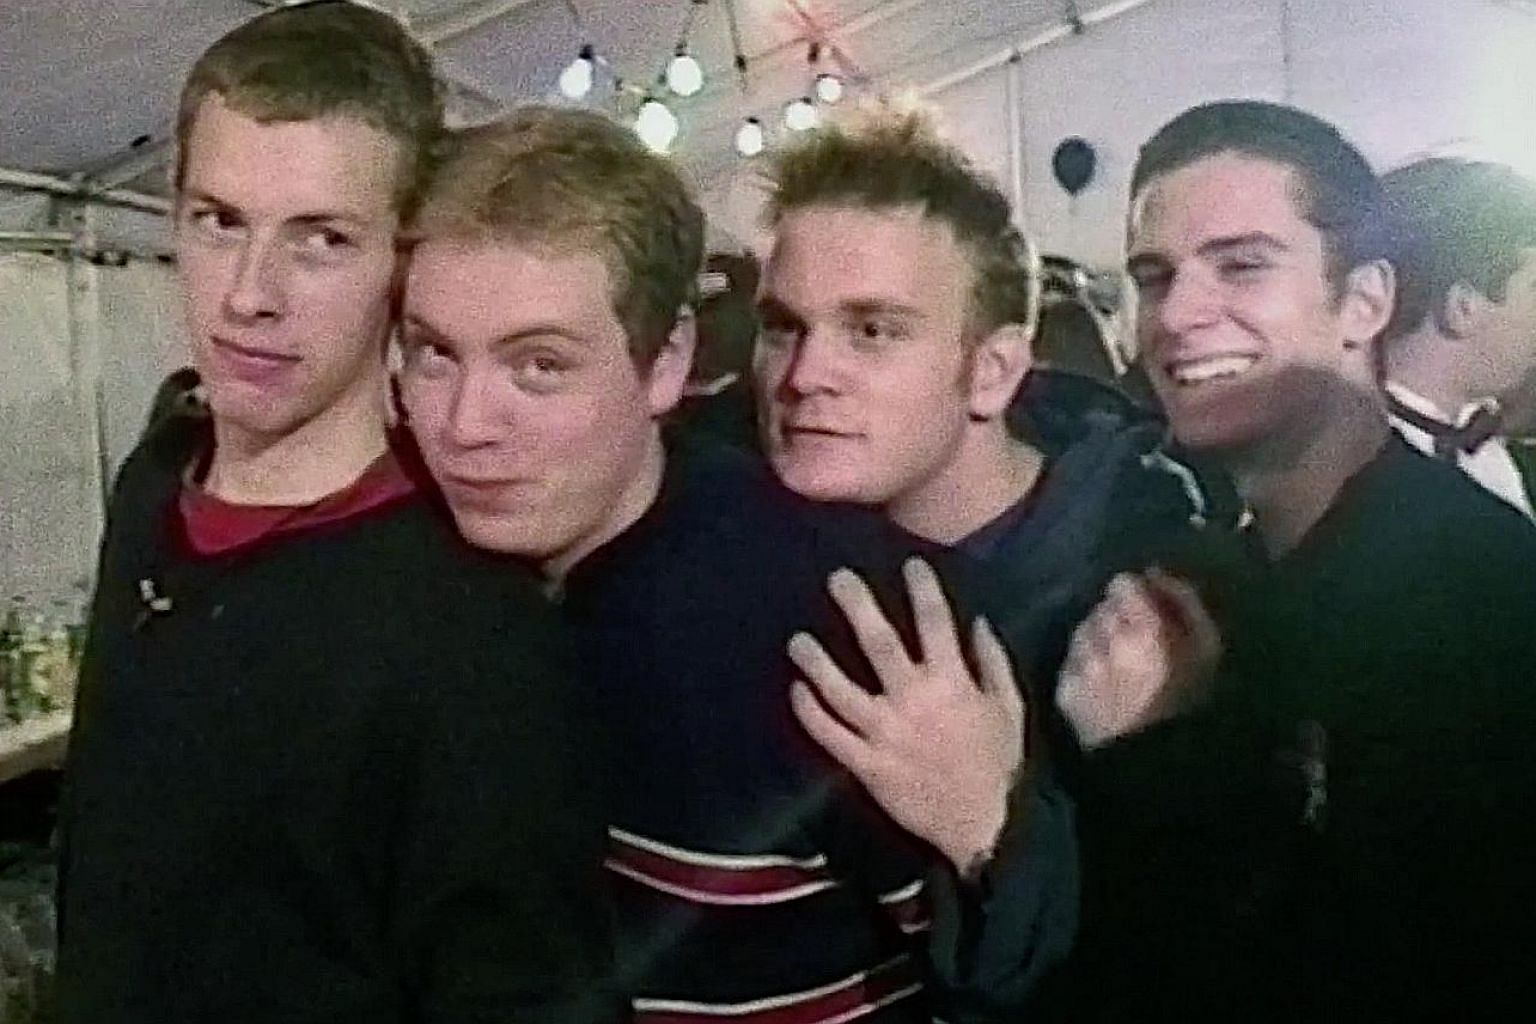 (From left) Chris Martin, Jonny Buckland, Will Champion and Guy Berryman in Coldplay: A Head Full Of Dreams, a kaleidoscopic jaunt through the band's meteoric rise from playing seedy club gigs to their most recent stadium-filling world tour.